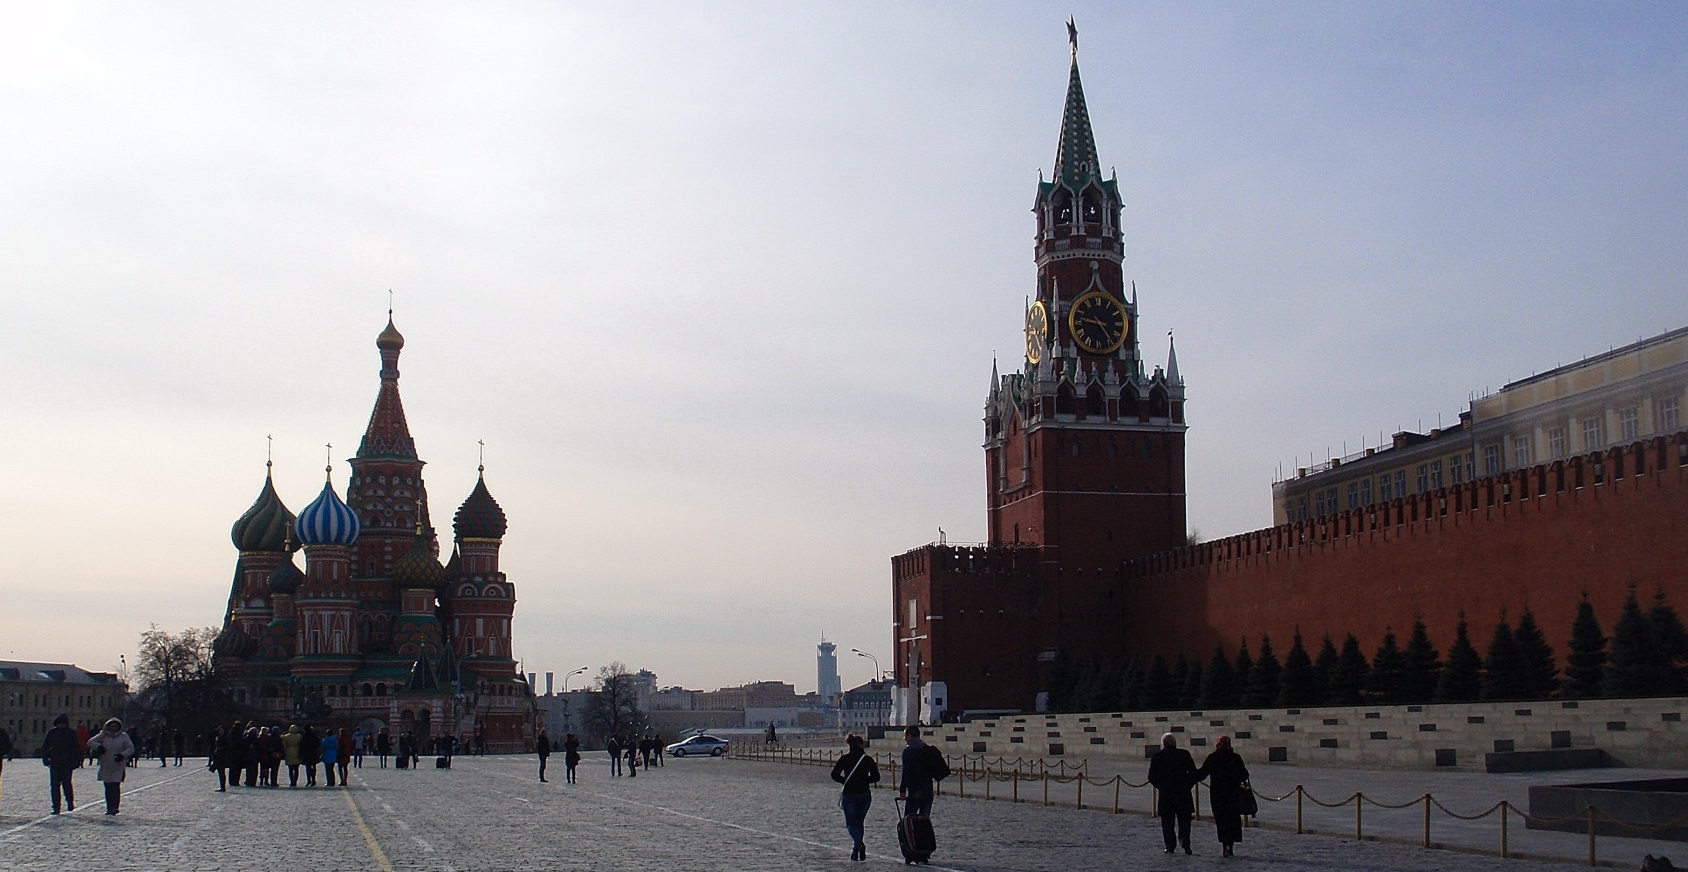 One day in Moscow - Red square